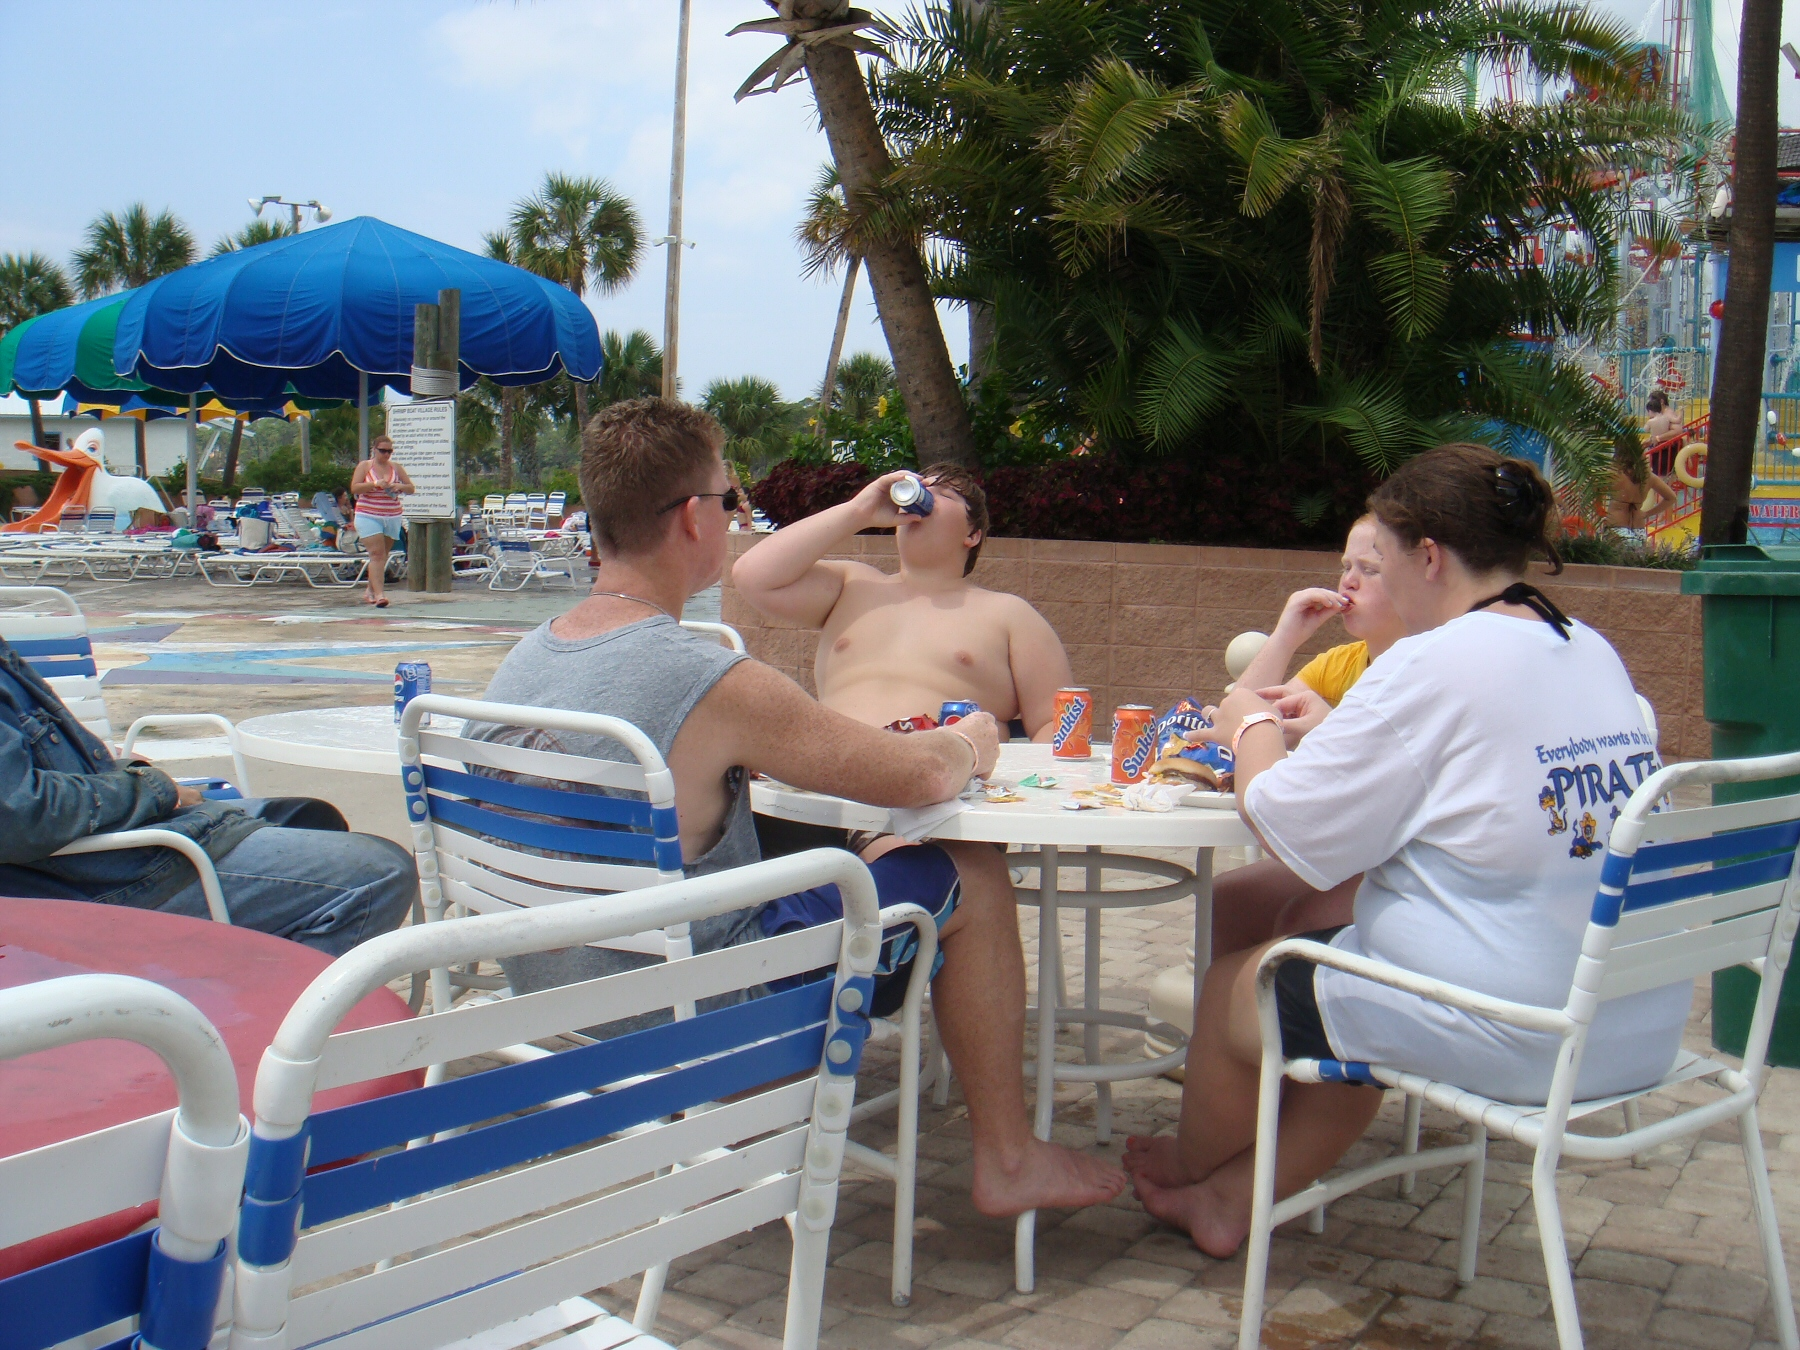 people drinking soda at water park